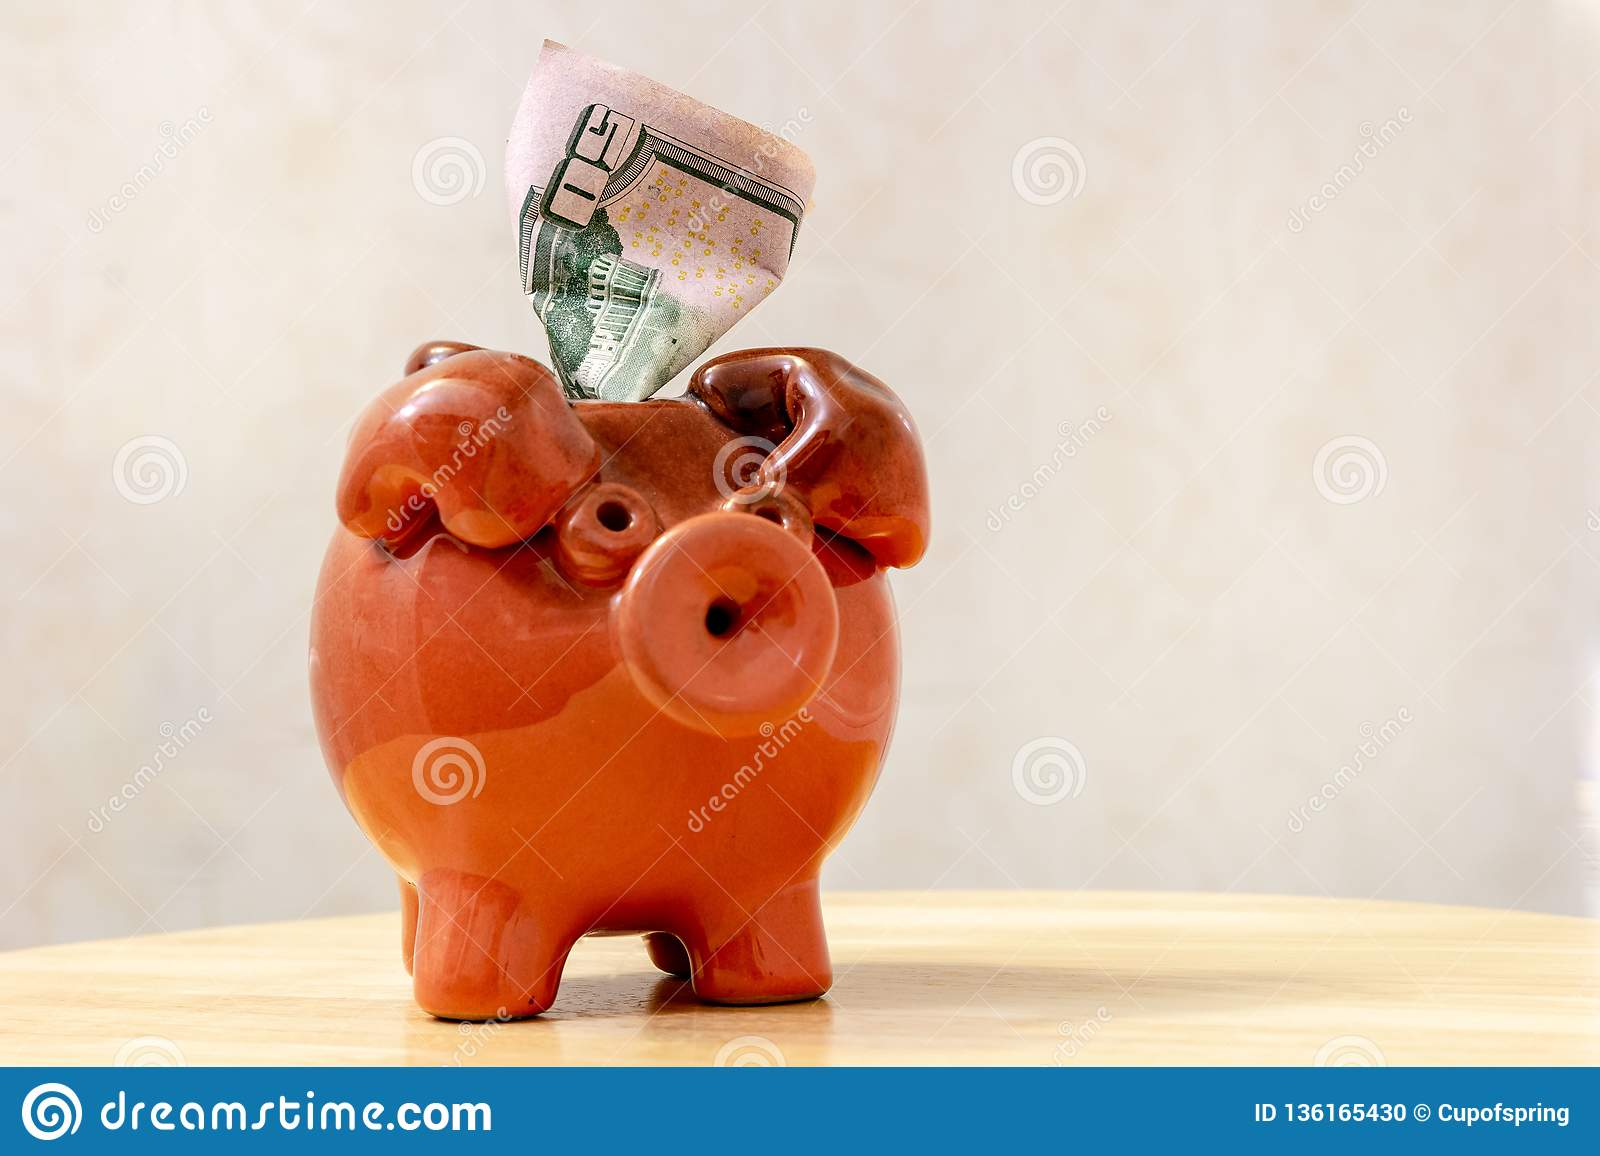 Ceramic brown piggy bank with 50 US dollar bill on a light background